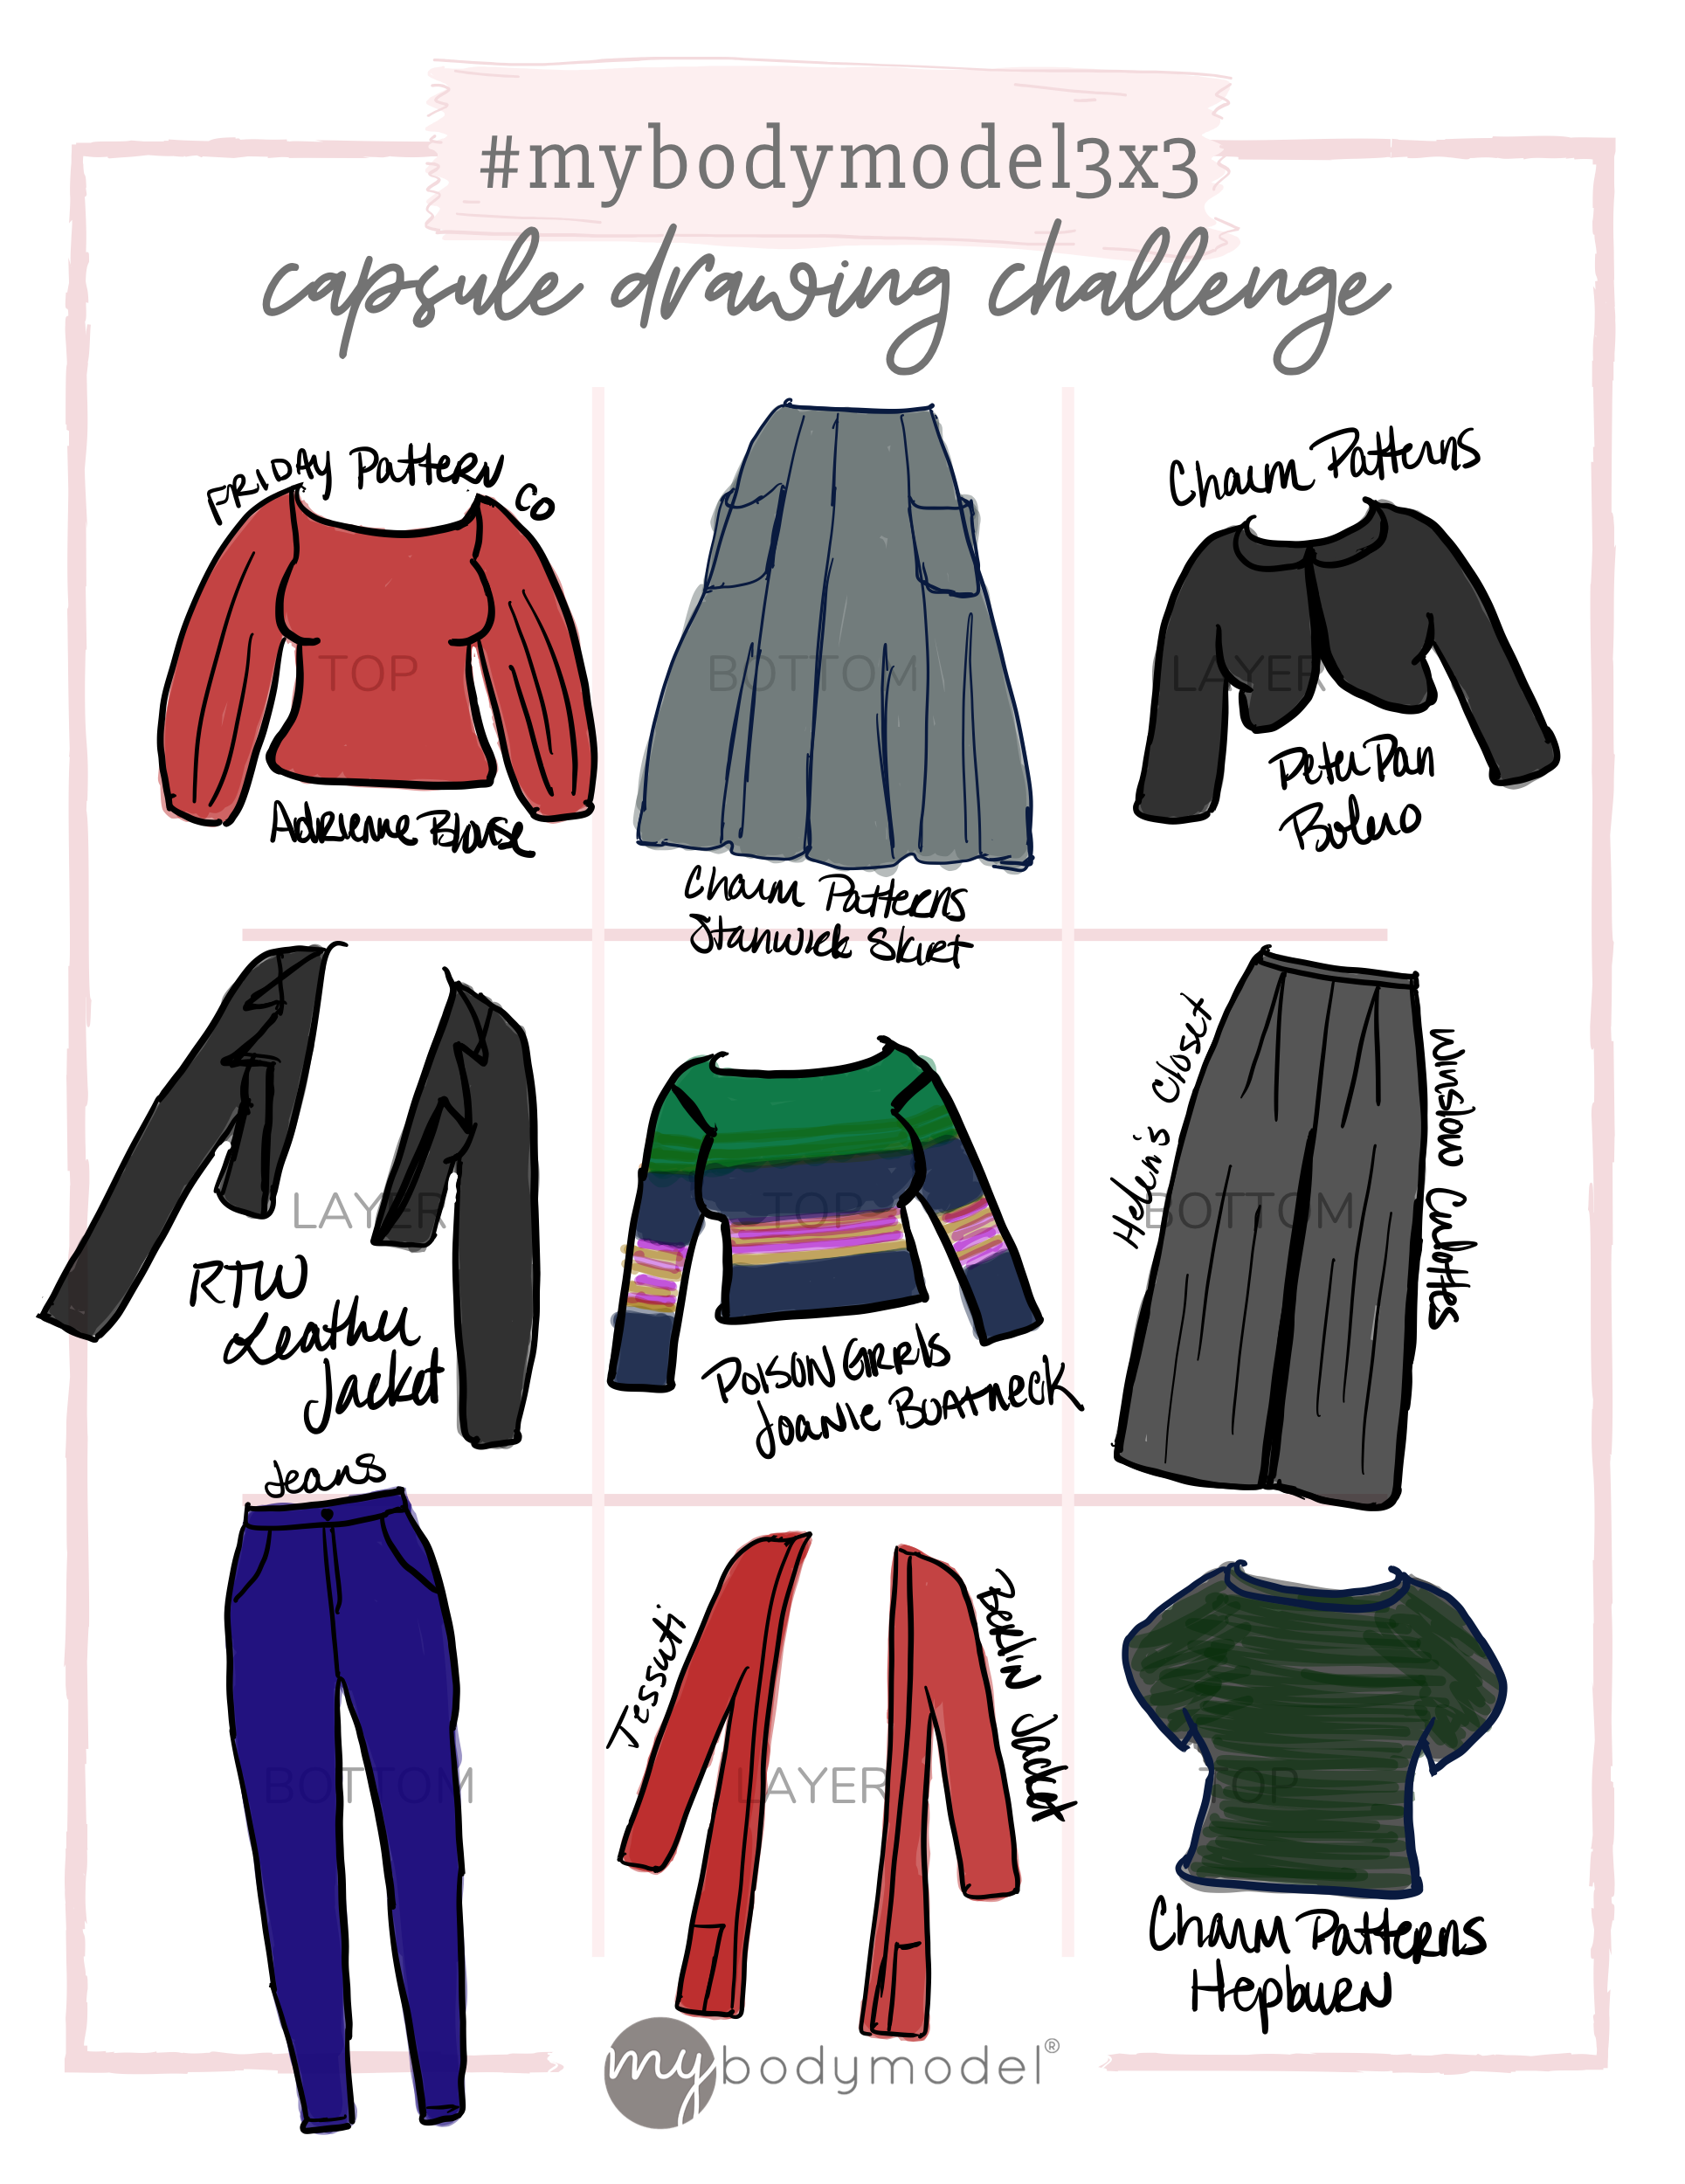 Capsule Wardrobe Planning with Croquis